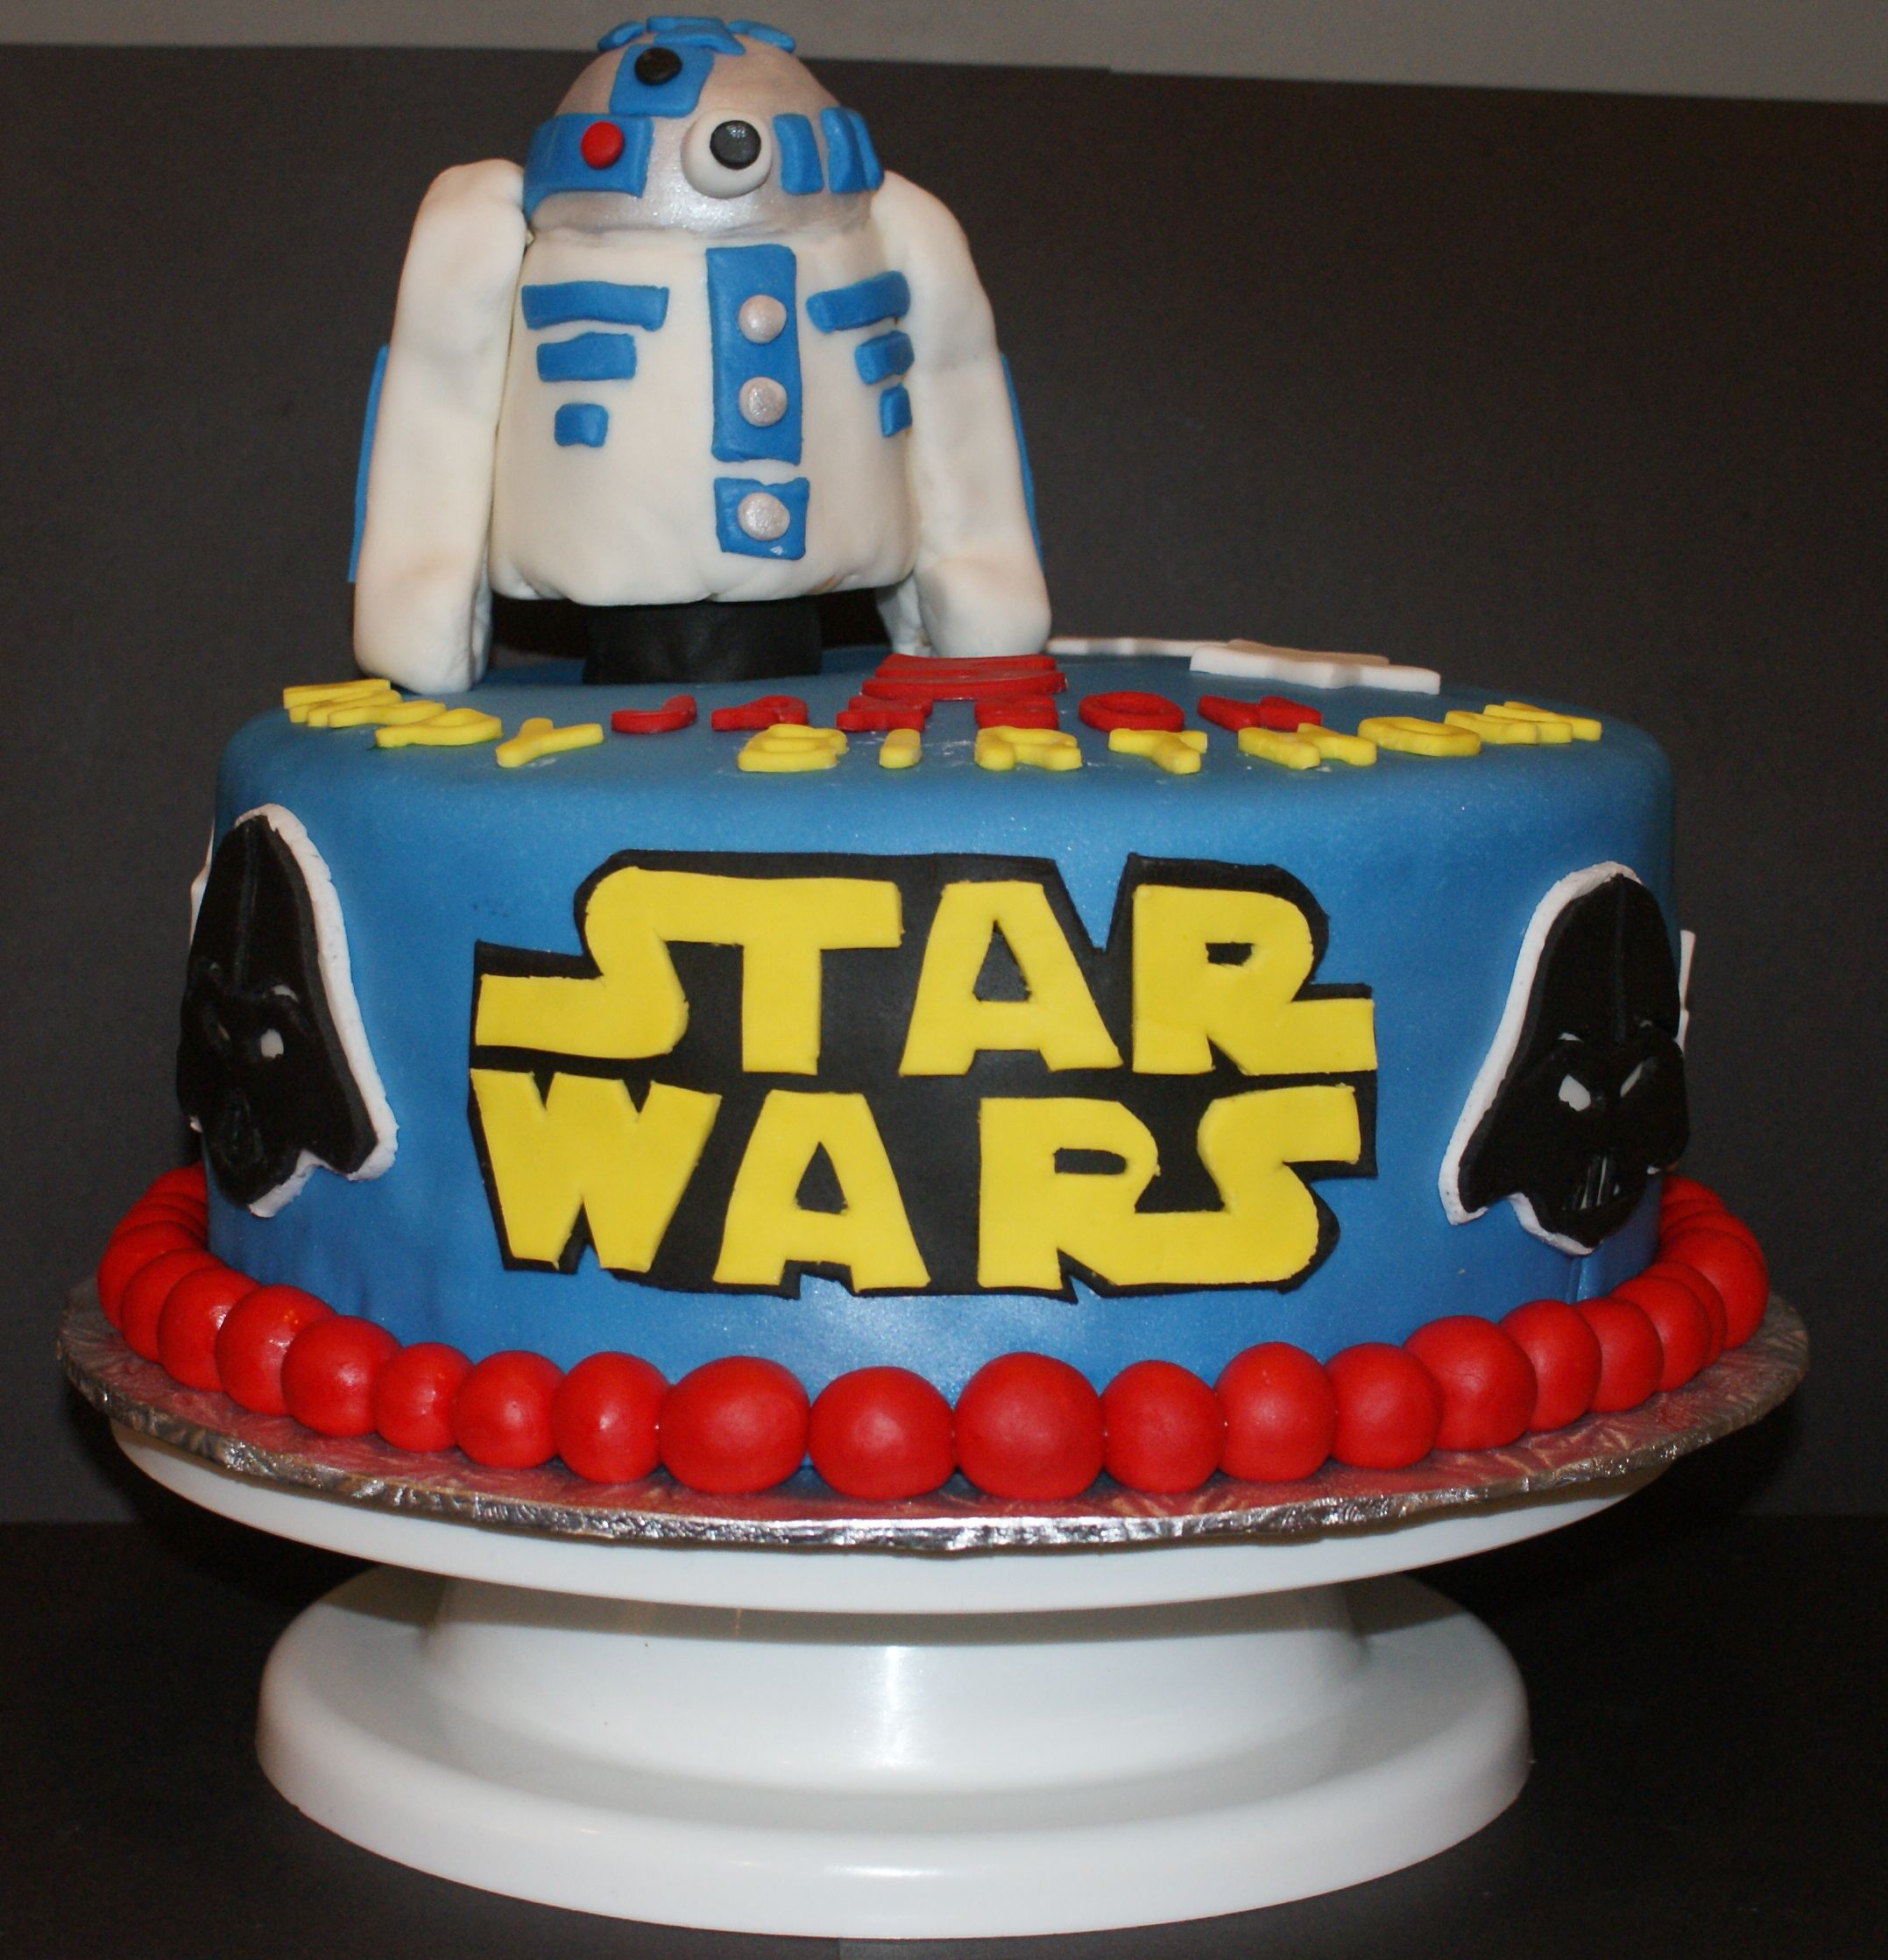 Excellent Star Wars Birthday Cake 2155 x 2237 · 451 kB · jpeg